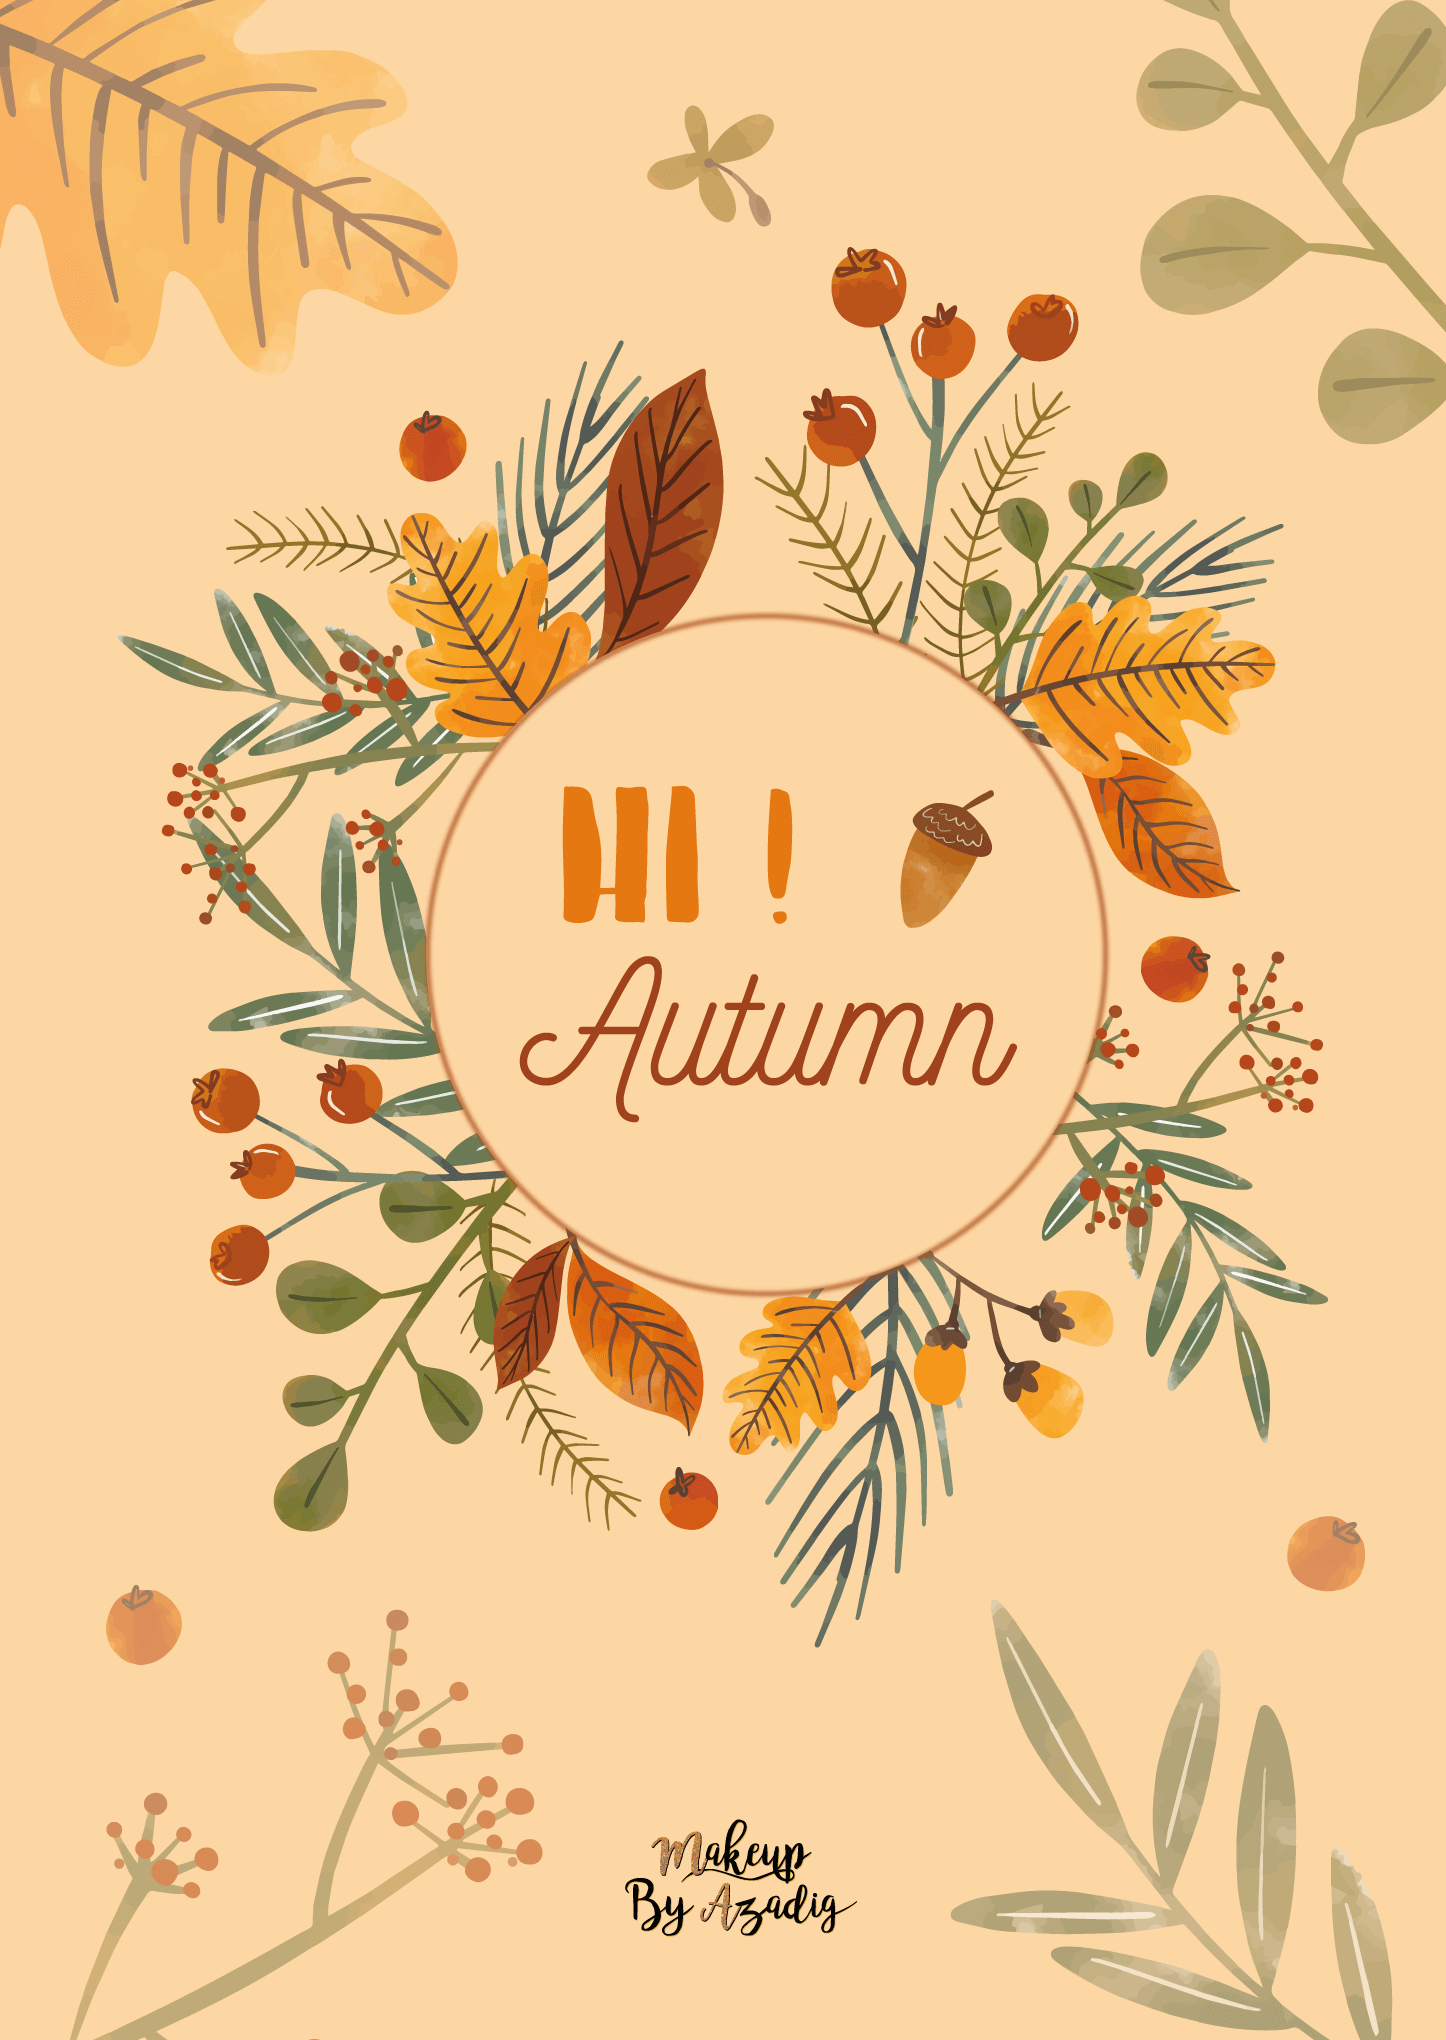 fond-decran-wallpaper-automne-leaves-autumn-girly-ipad-tablette-apple-makeupbyazadig-tendance